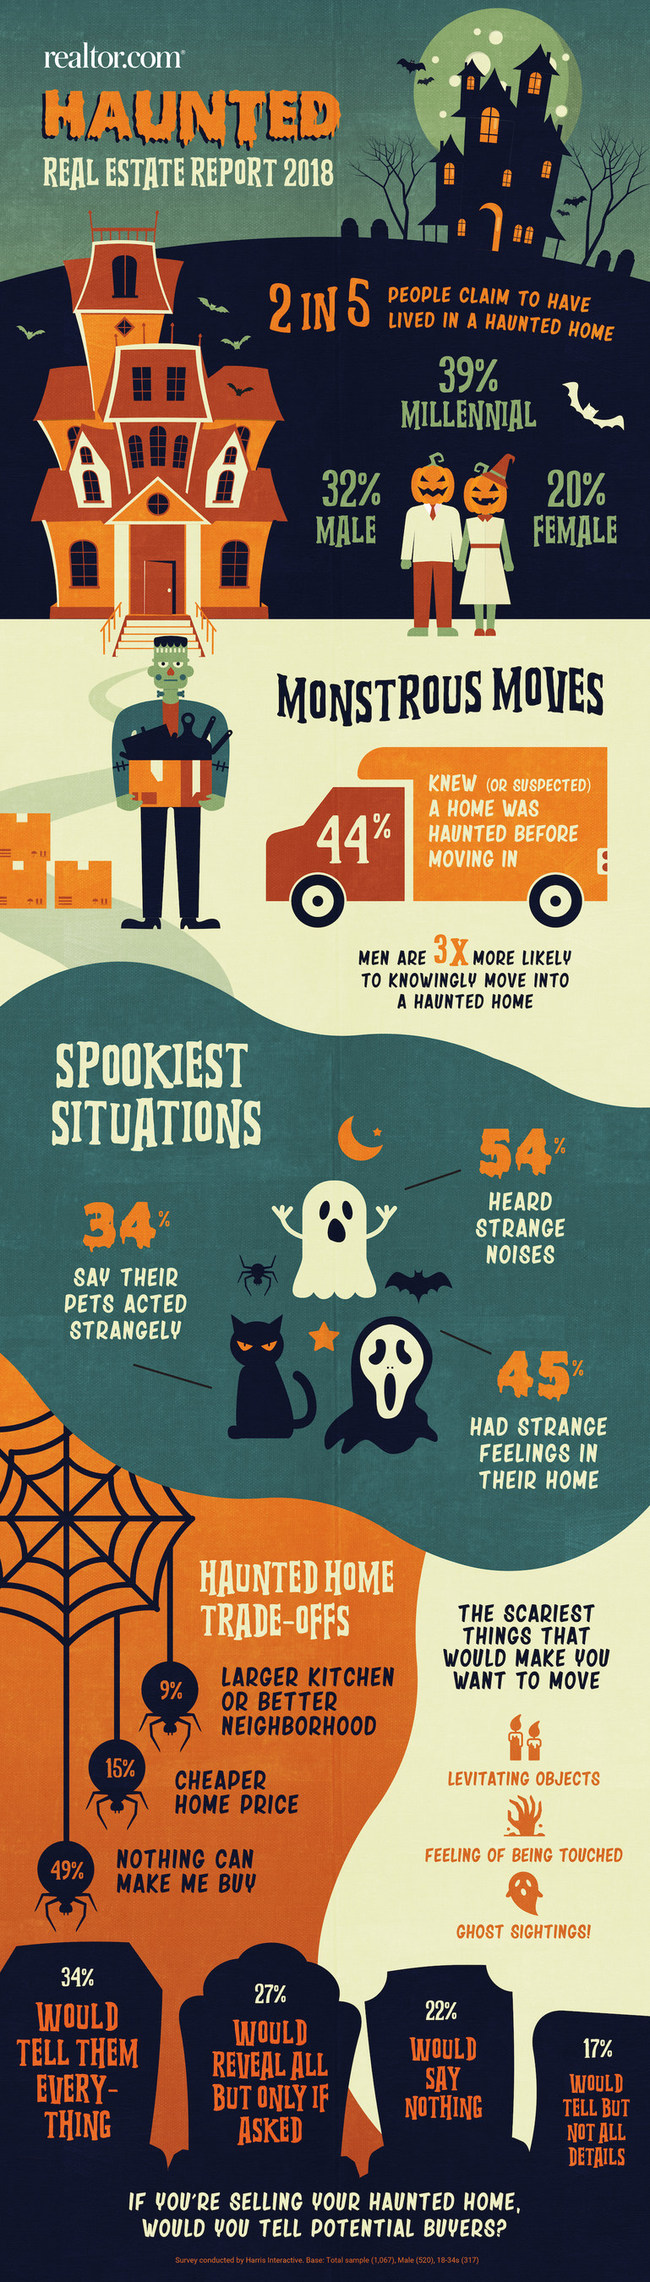 2 out of 5 people claim to have lived in a haunted home, according to realtor.com's Haunted Real Estate Report 2018.